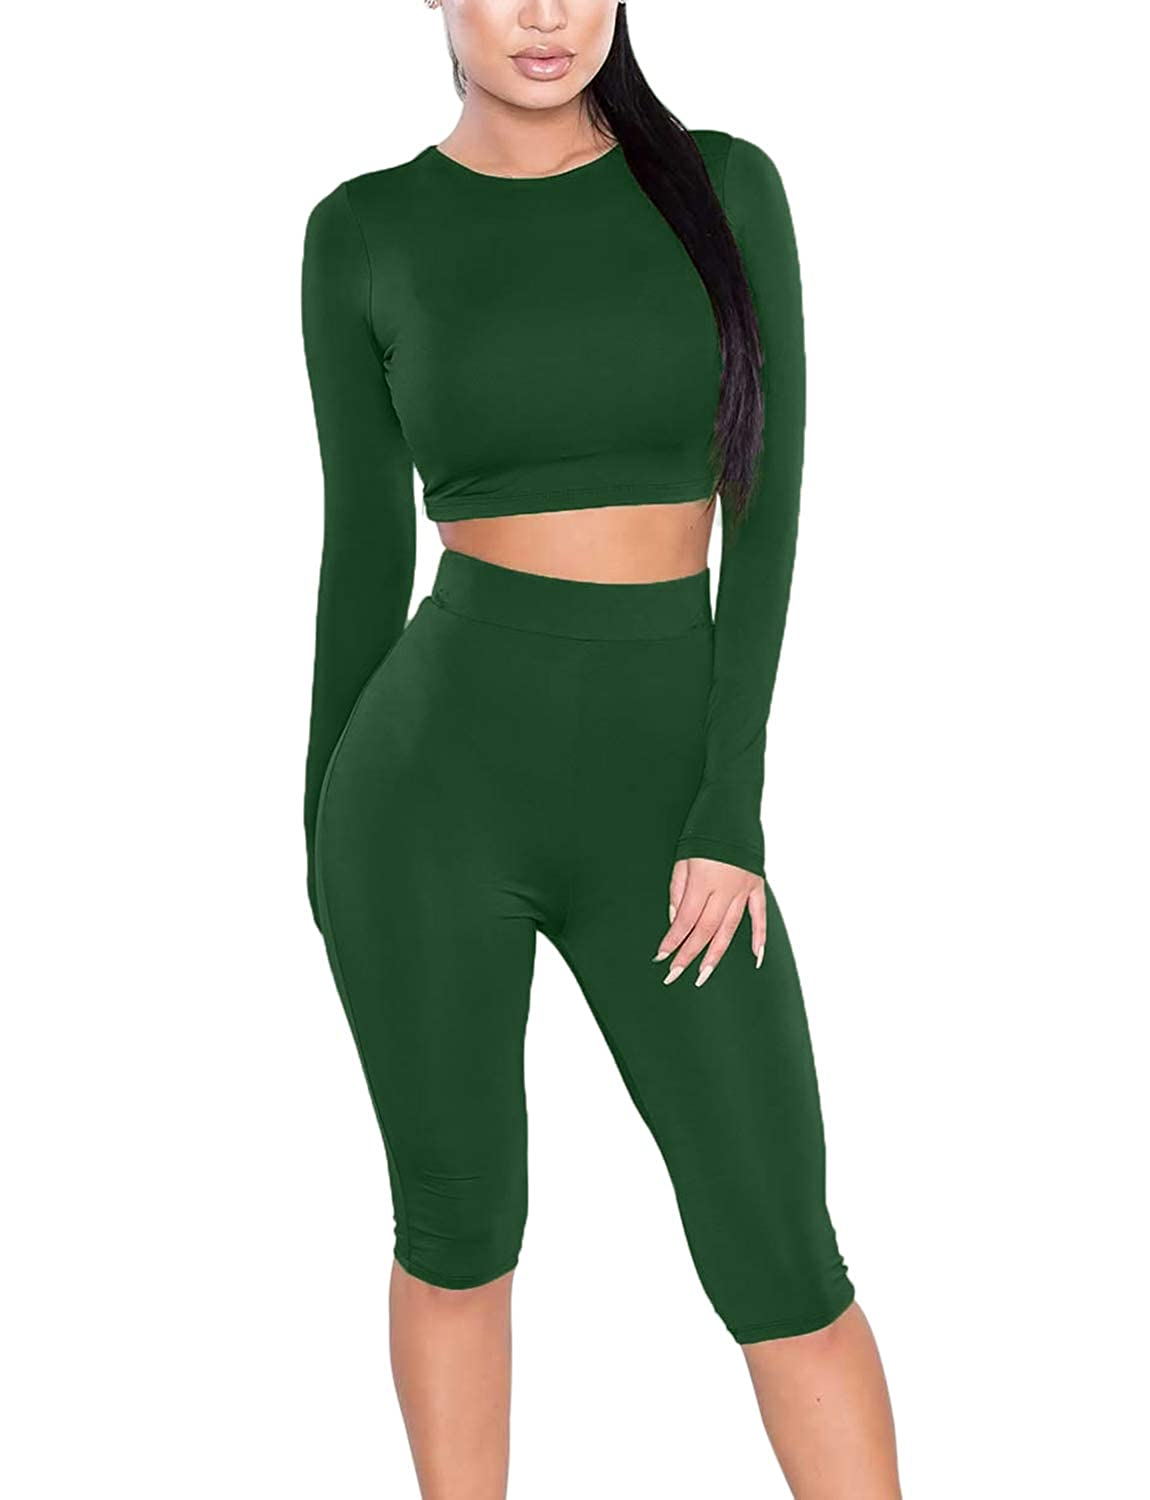 Amilia Womens Sexy Long Sleeve Crop Tops High Waist Leggings 2 Piece Bodycon  Set Casual Outfit Tracksuit at Amazon Women s Clothing store  1f42a6630